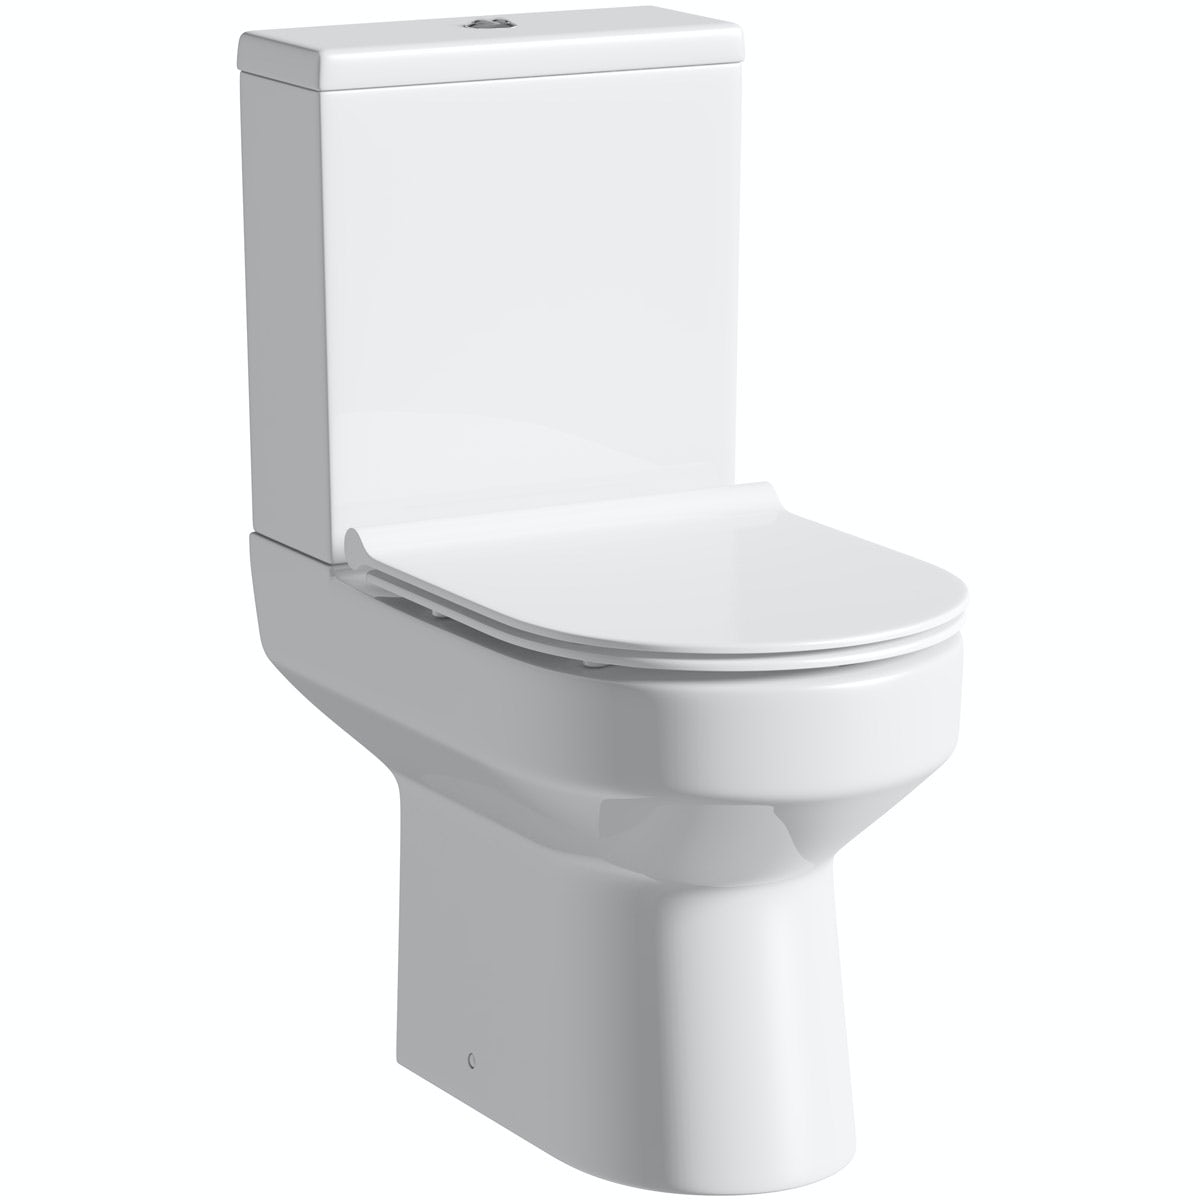 Orchard Wharfe close coupled toilet with soft close slim seat with pan connector